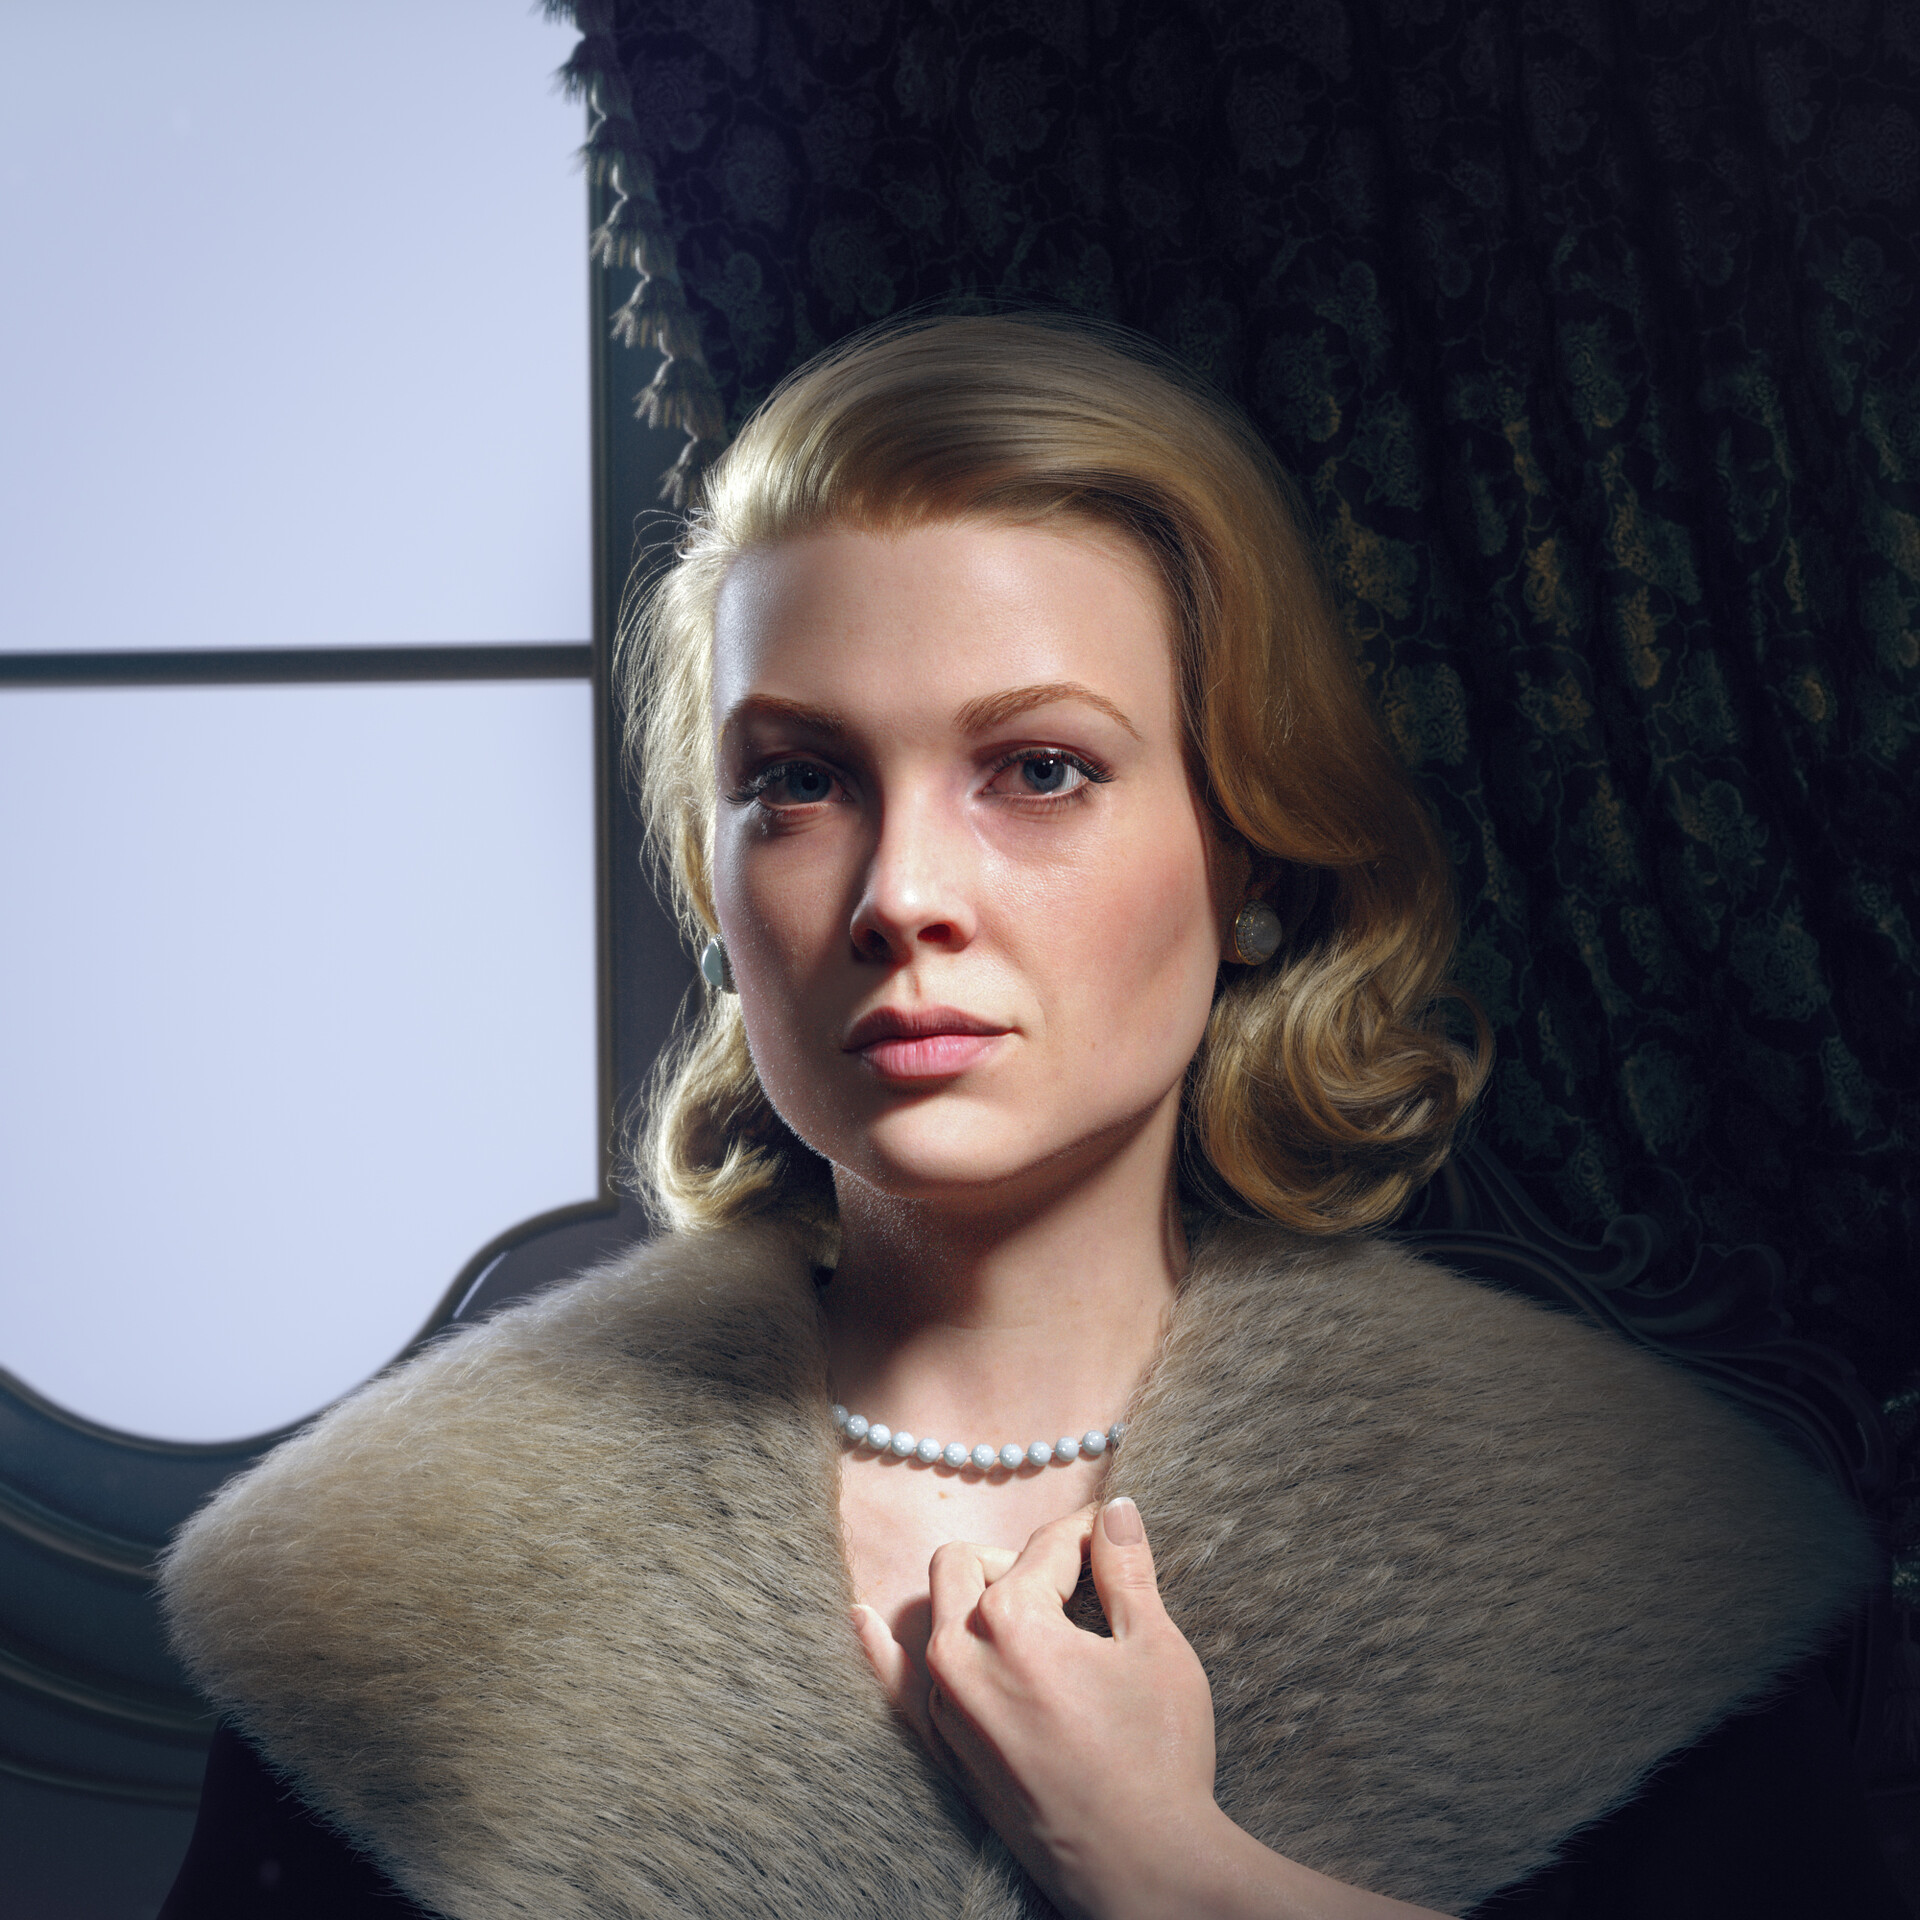 hadi karimi grace kelly 3D portrait